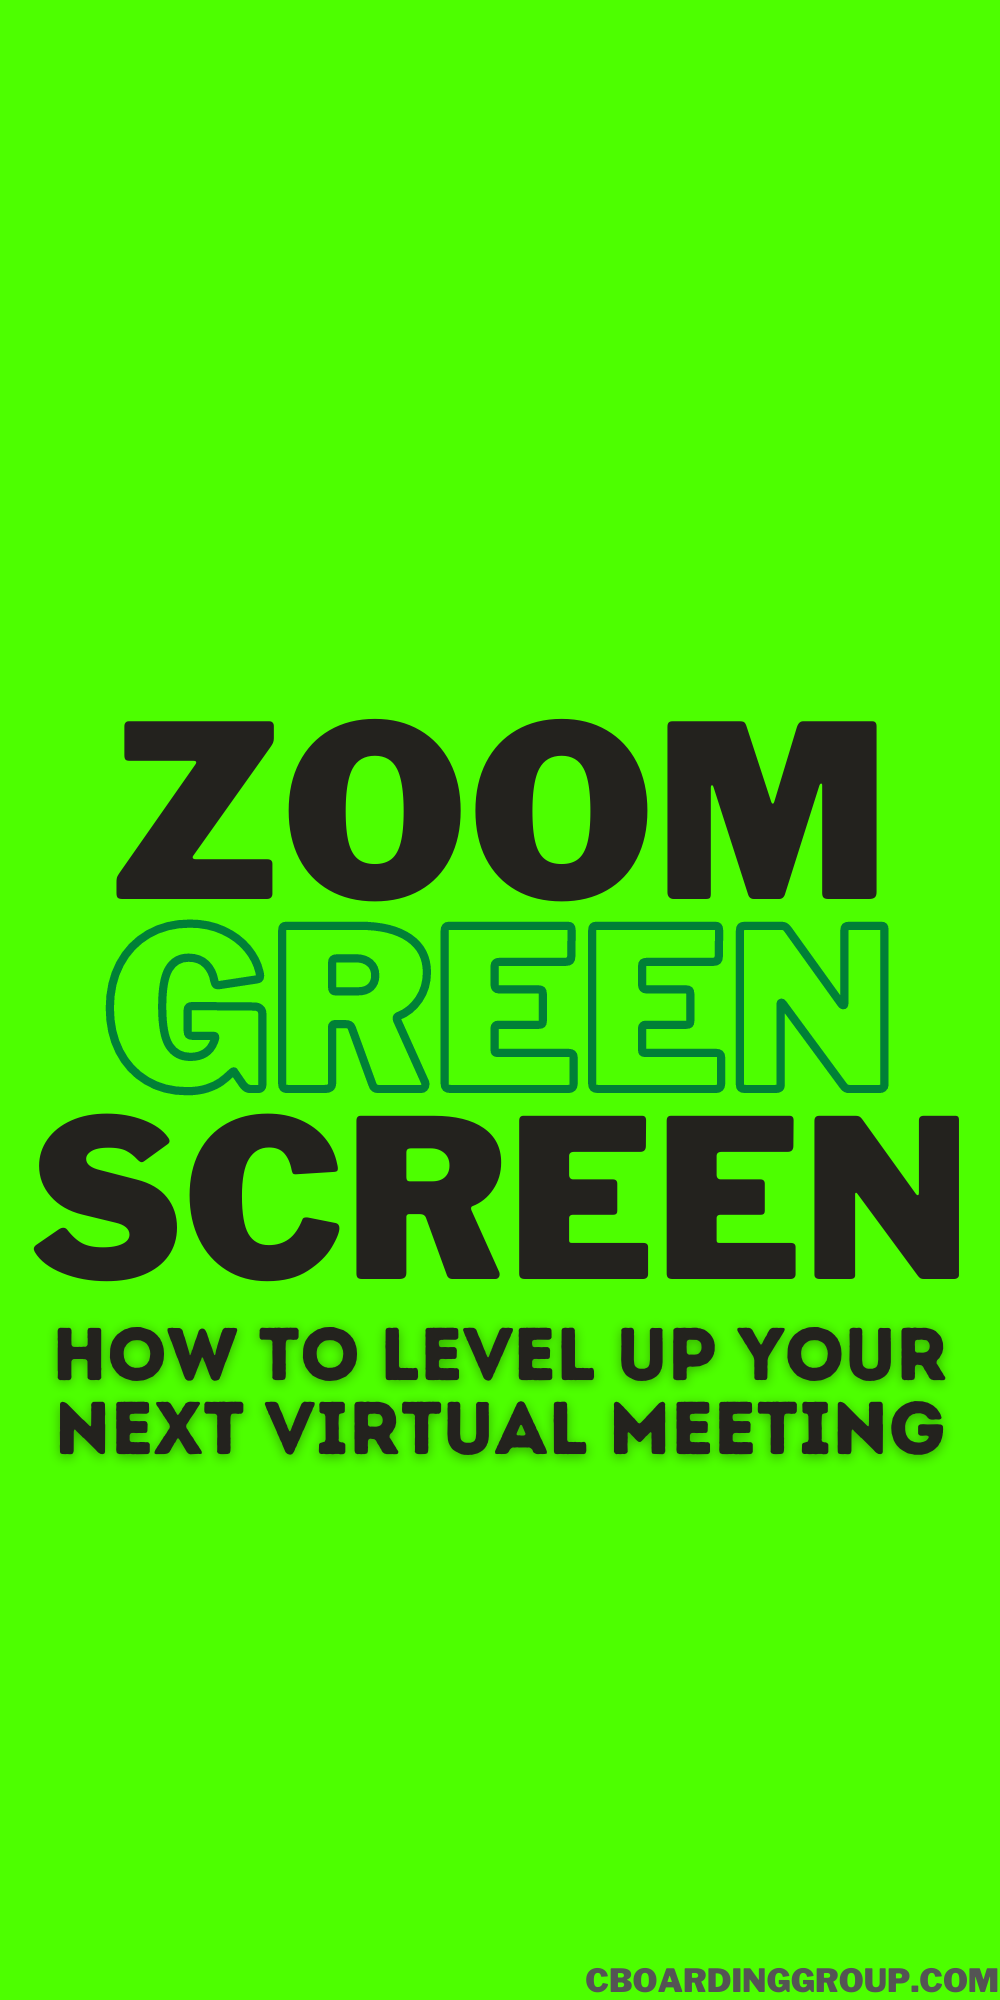 Where To Buy The Best Green Screen For Zoom Meetings Greenscreen Work From Home Tips Best Green Screen